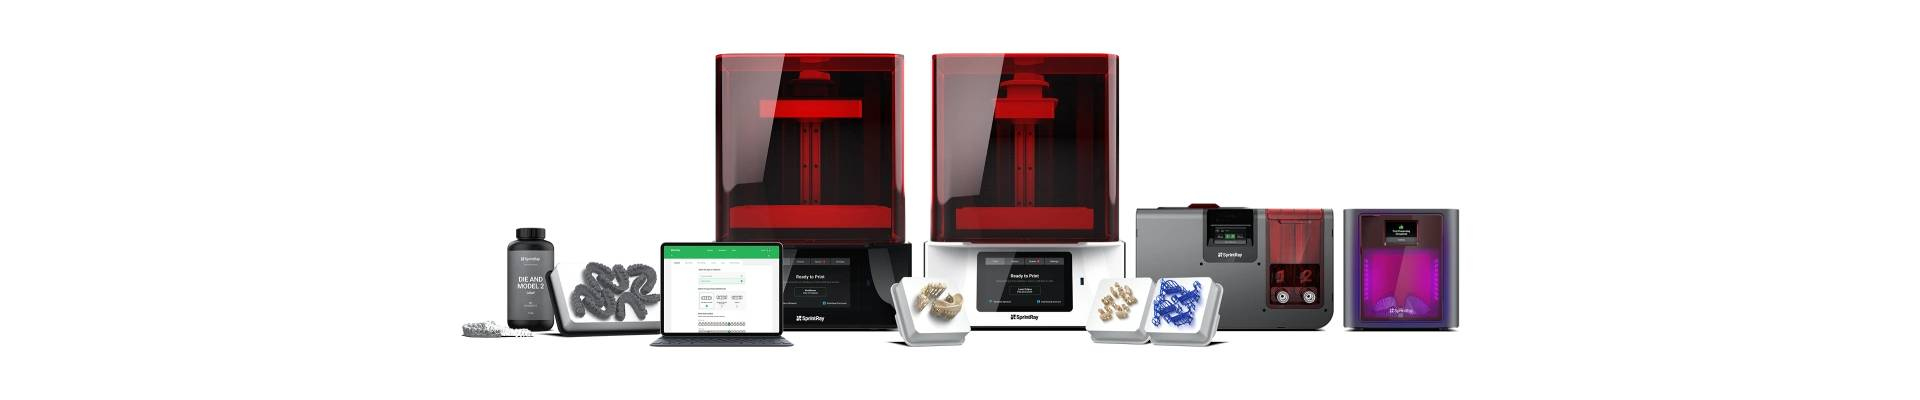 Sprintray 3D Printers and Accessories